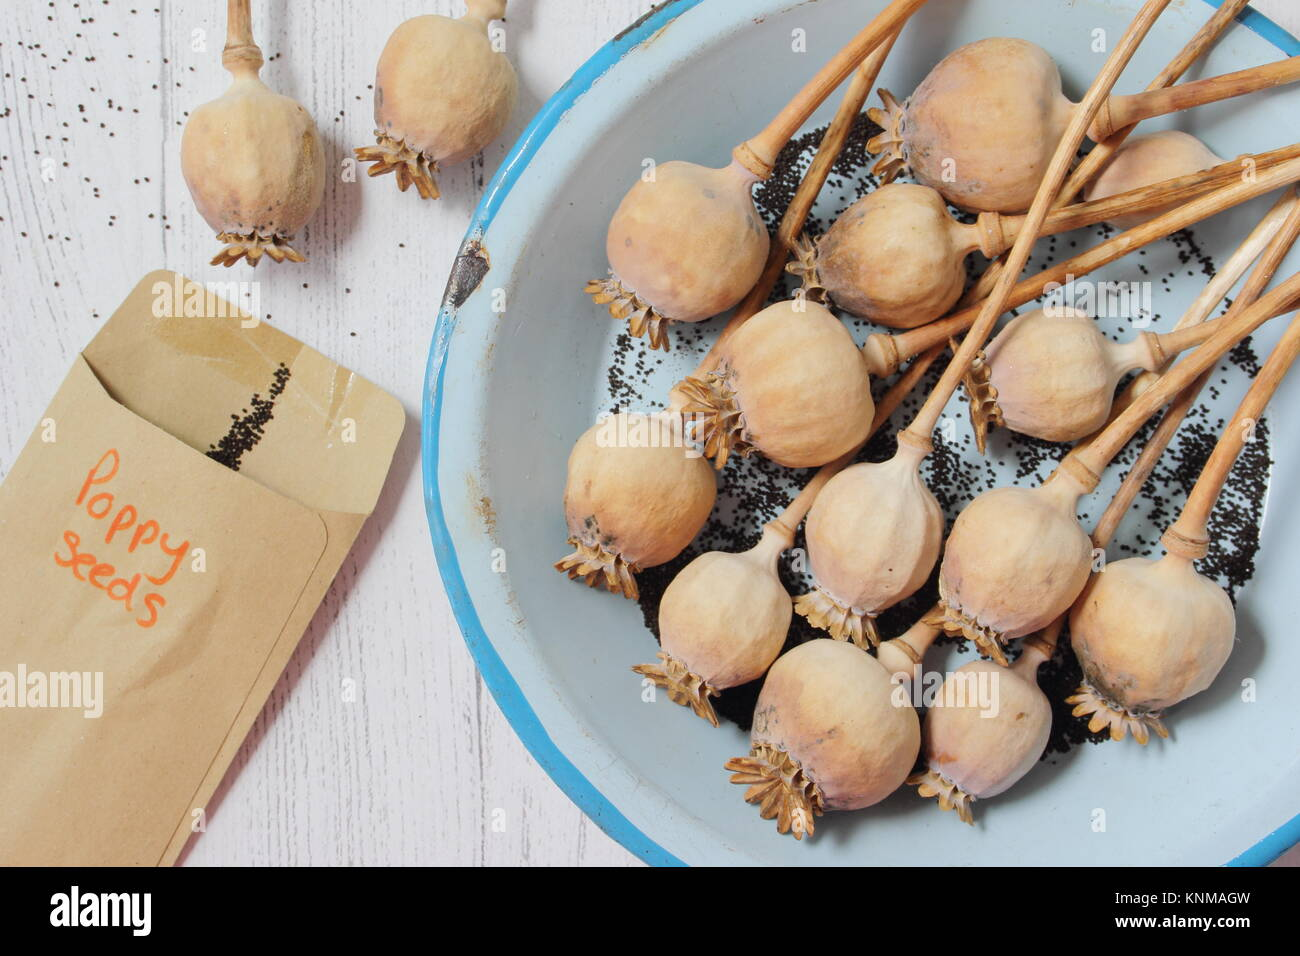 Collecting poppy seeds (Papaver somniferum), from dried seed heads for storage in envelopes during winter, UK - Stock Image